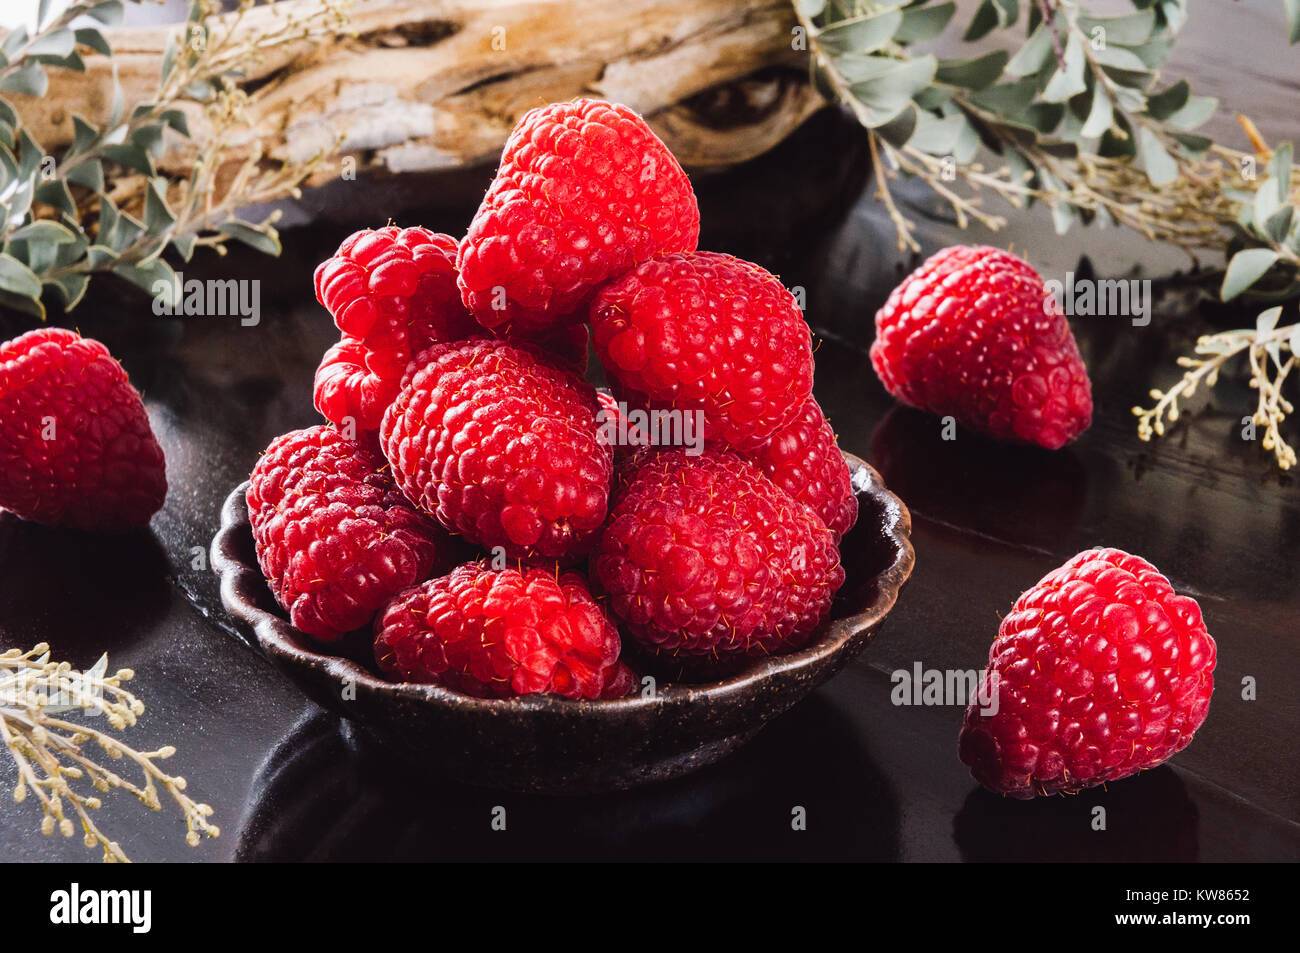 Fresh Raspberries with Dried Wood and Botanicals - Stock Image